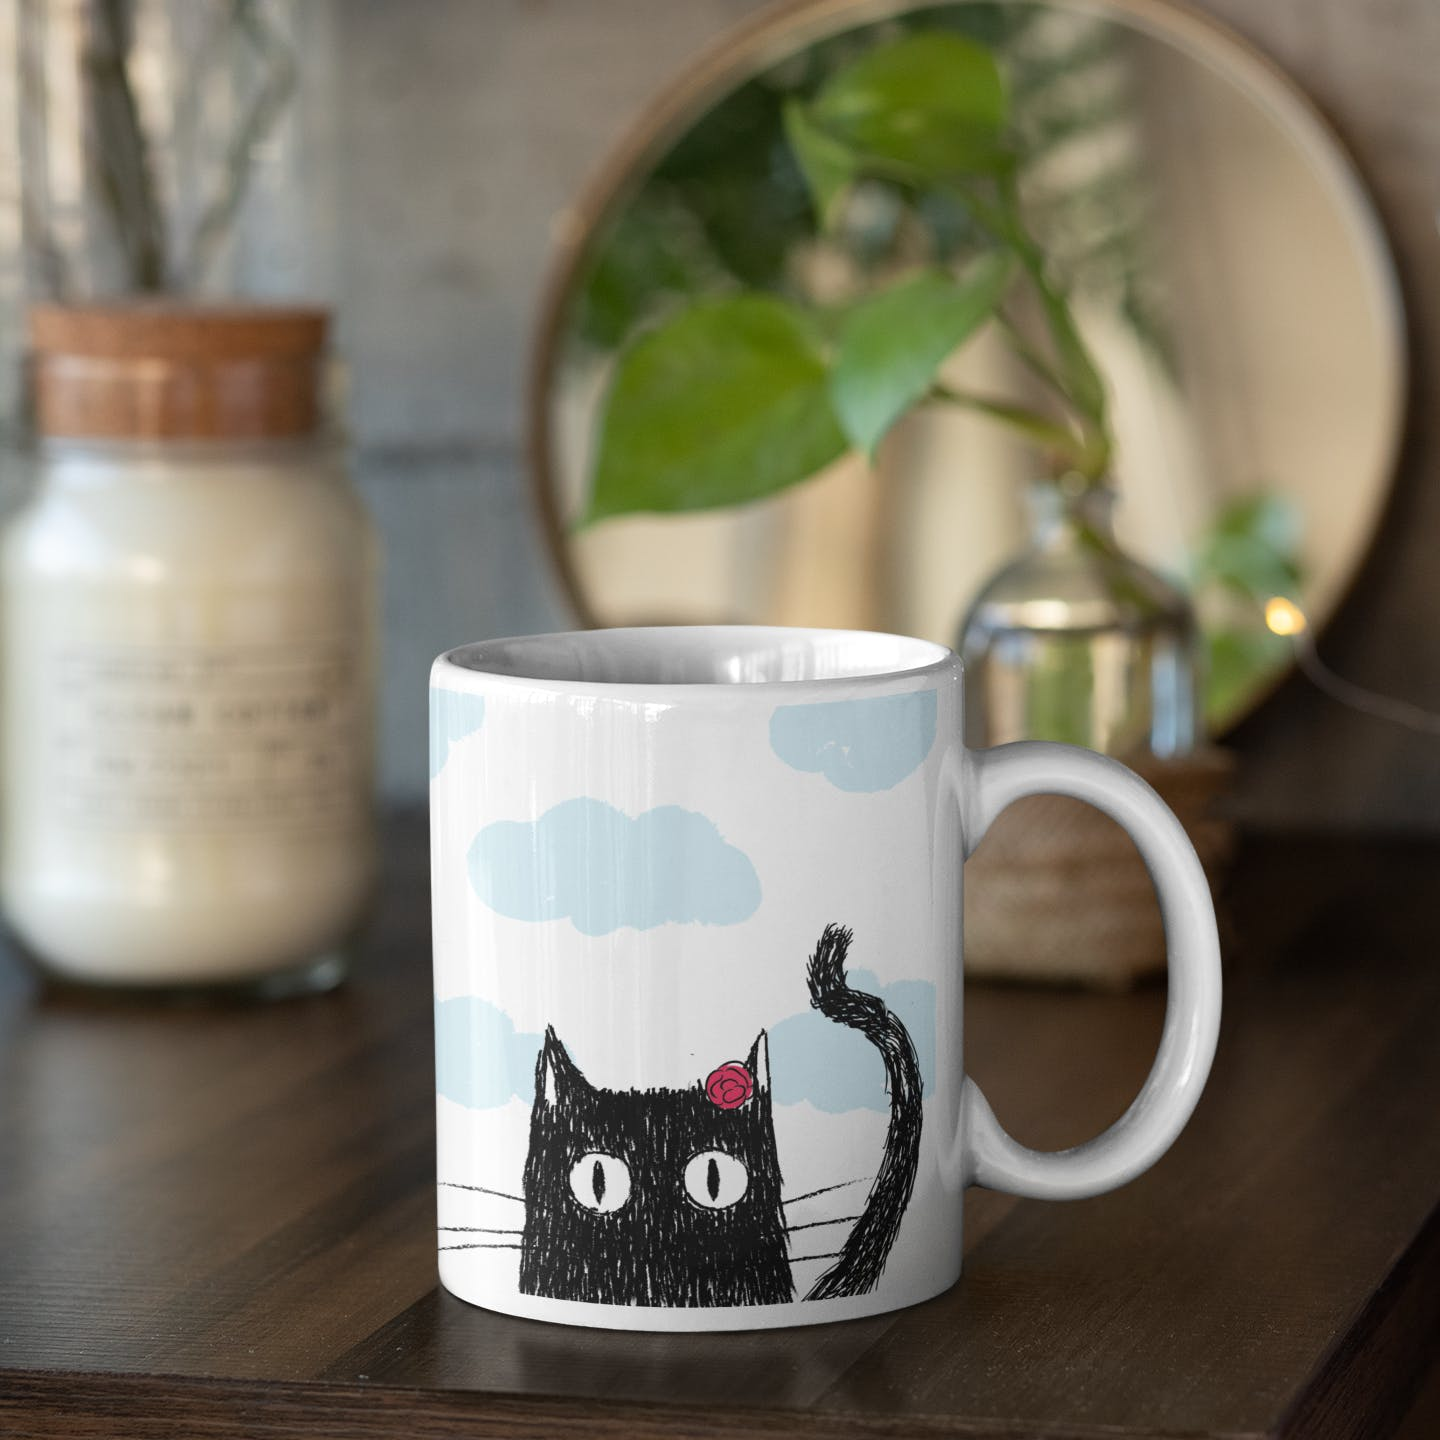 Cat,Coffee cup,Mug,Black cat,Cup,Cup,Drinkware,Small to medium-sized cats,Tableware,Owl